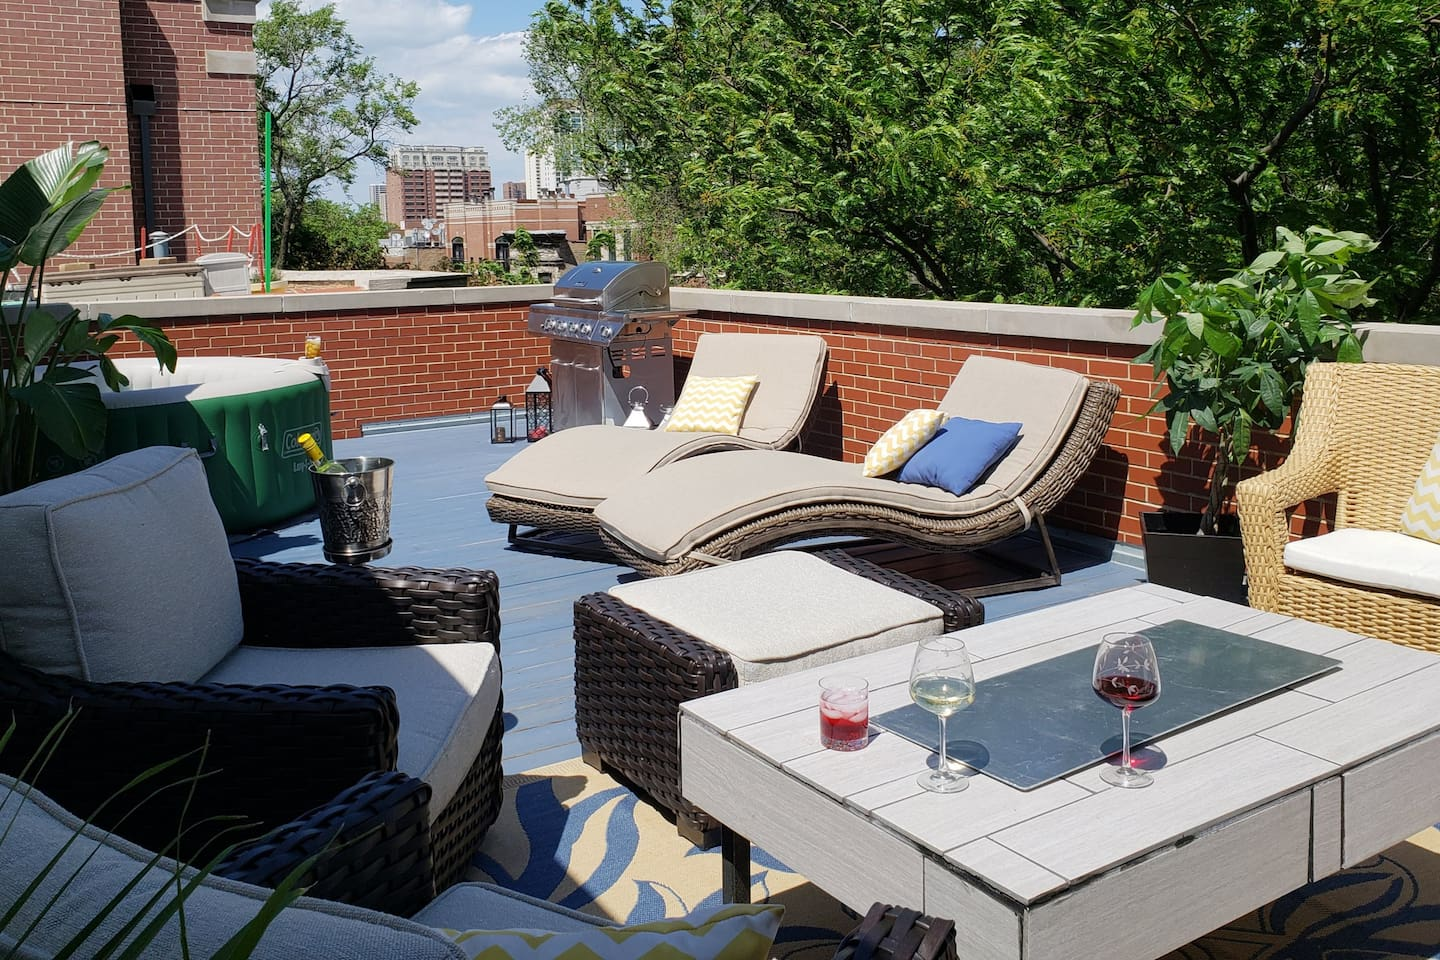 Private Roof Deck, Fire Table, Grill, Hot Tub, Luxury Seating.